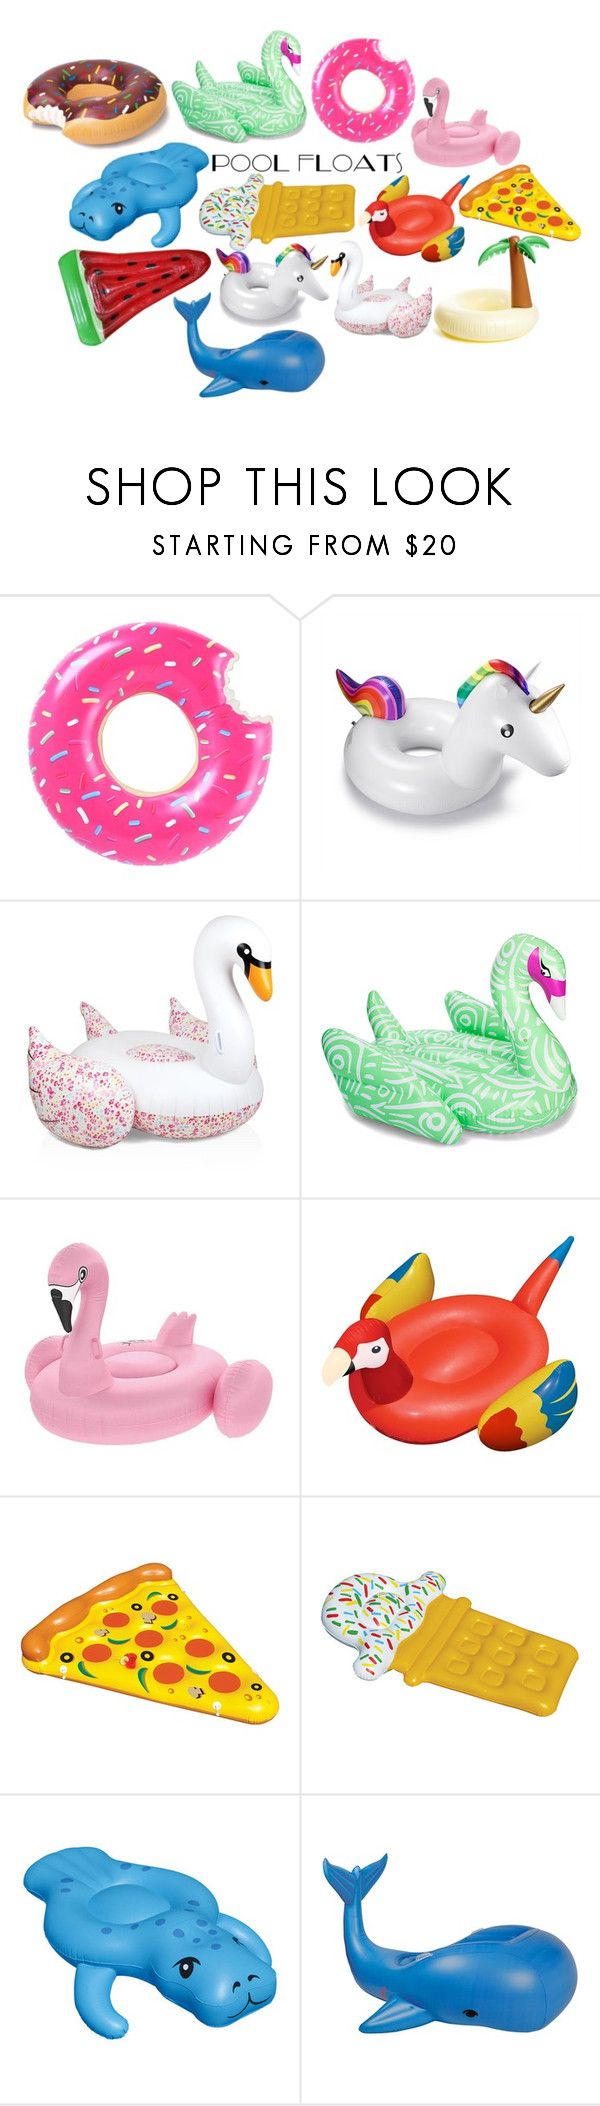 """Pool Floats"" by kiannanas ❤ liked on Polyvore featuring interior, interiors, interior design, home, home decor, interior decorating, Sunnylife, Funboy, Floatie Kings and Ankit"